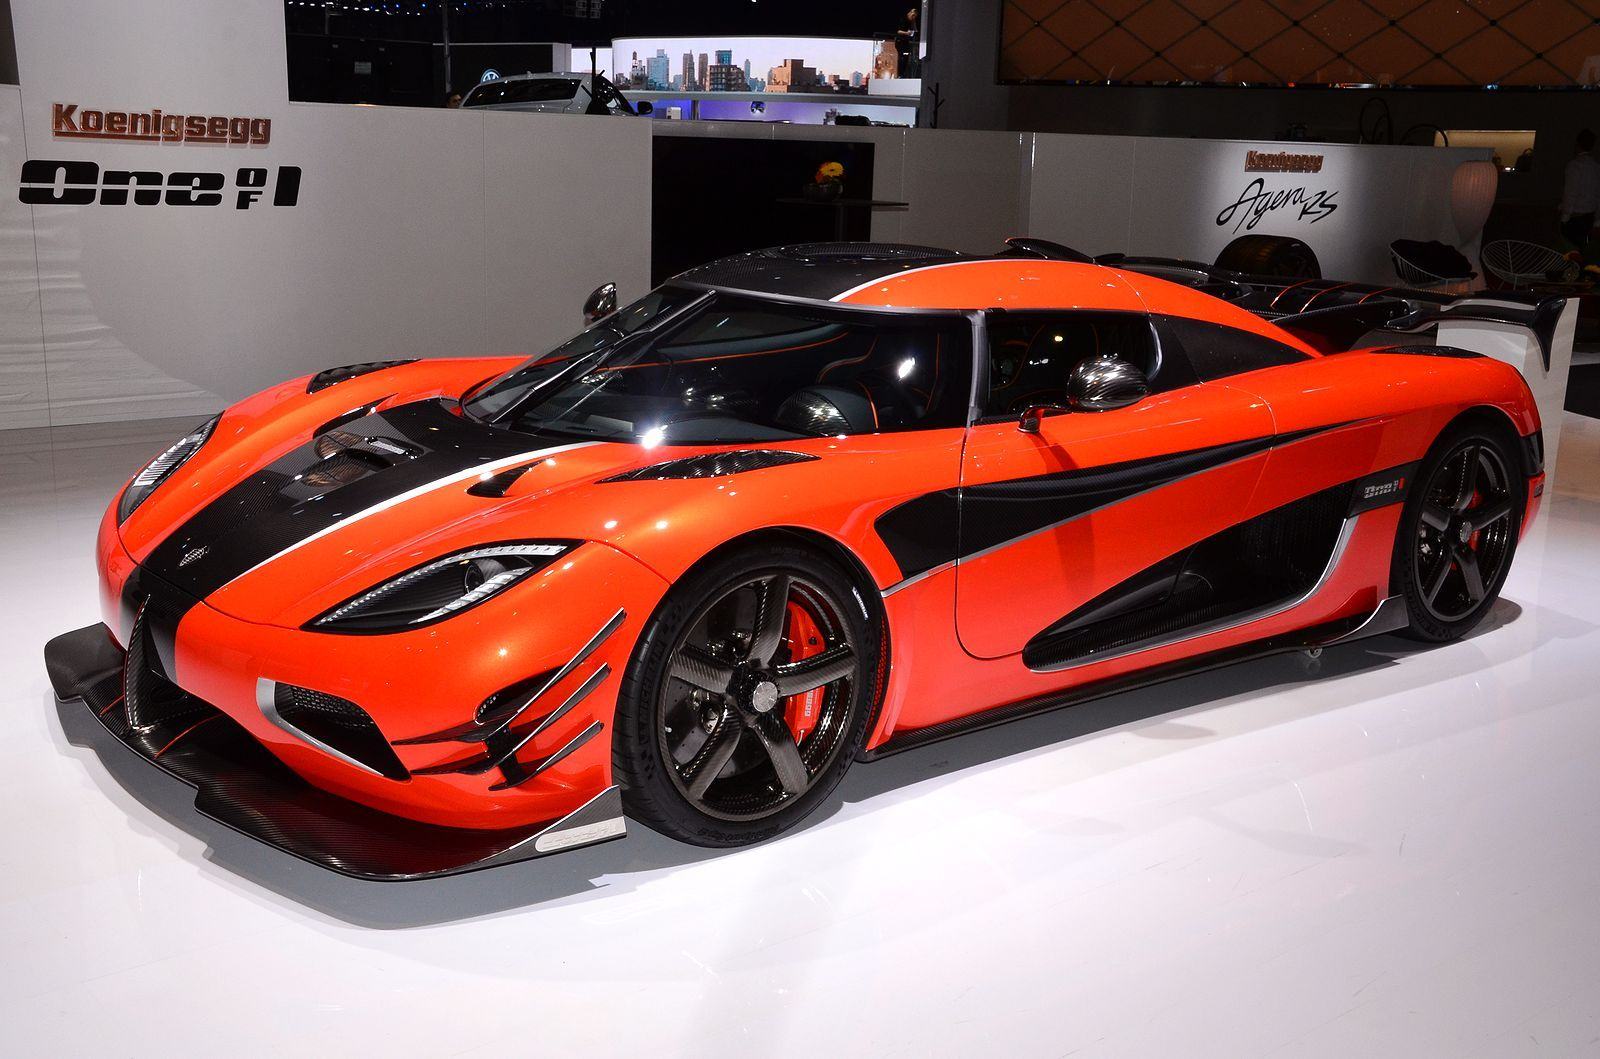 gen ve 2016 live koenigsegg agera one of 1 voitures fibre de carbone et chappement. Black Bedroom Furniture Sets. Home Design Ideas